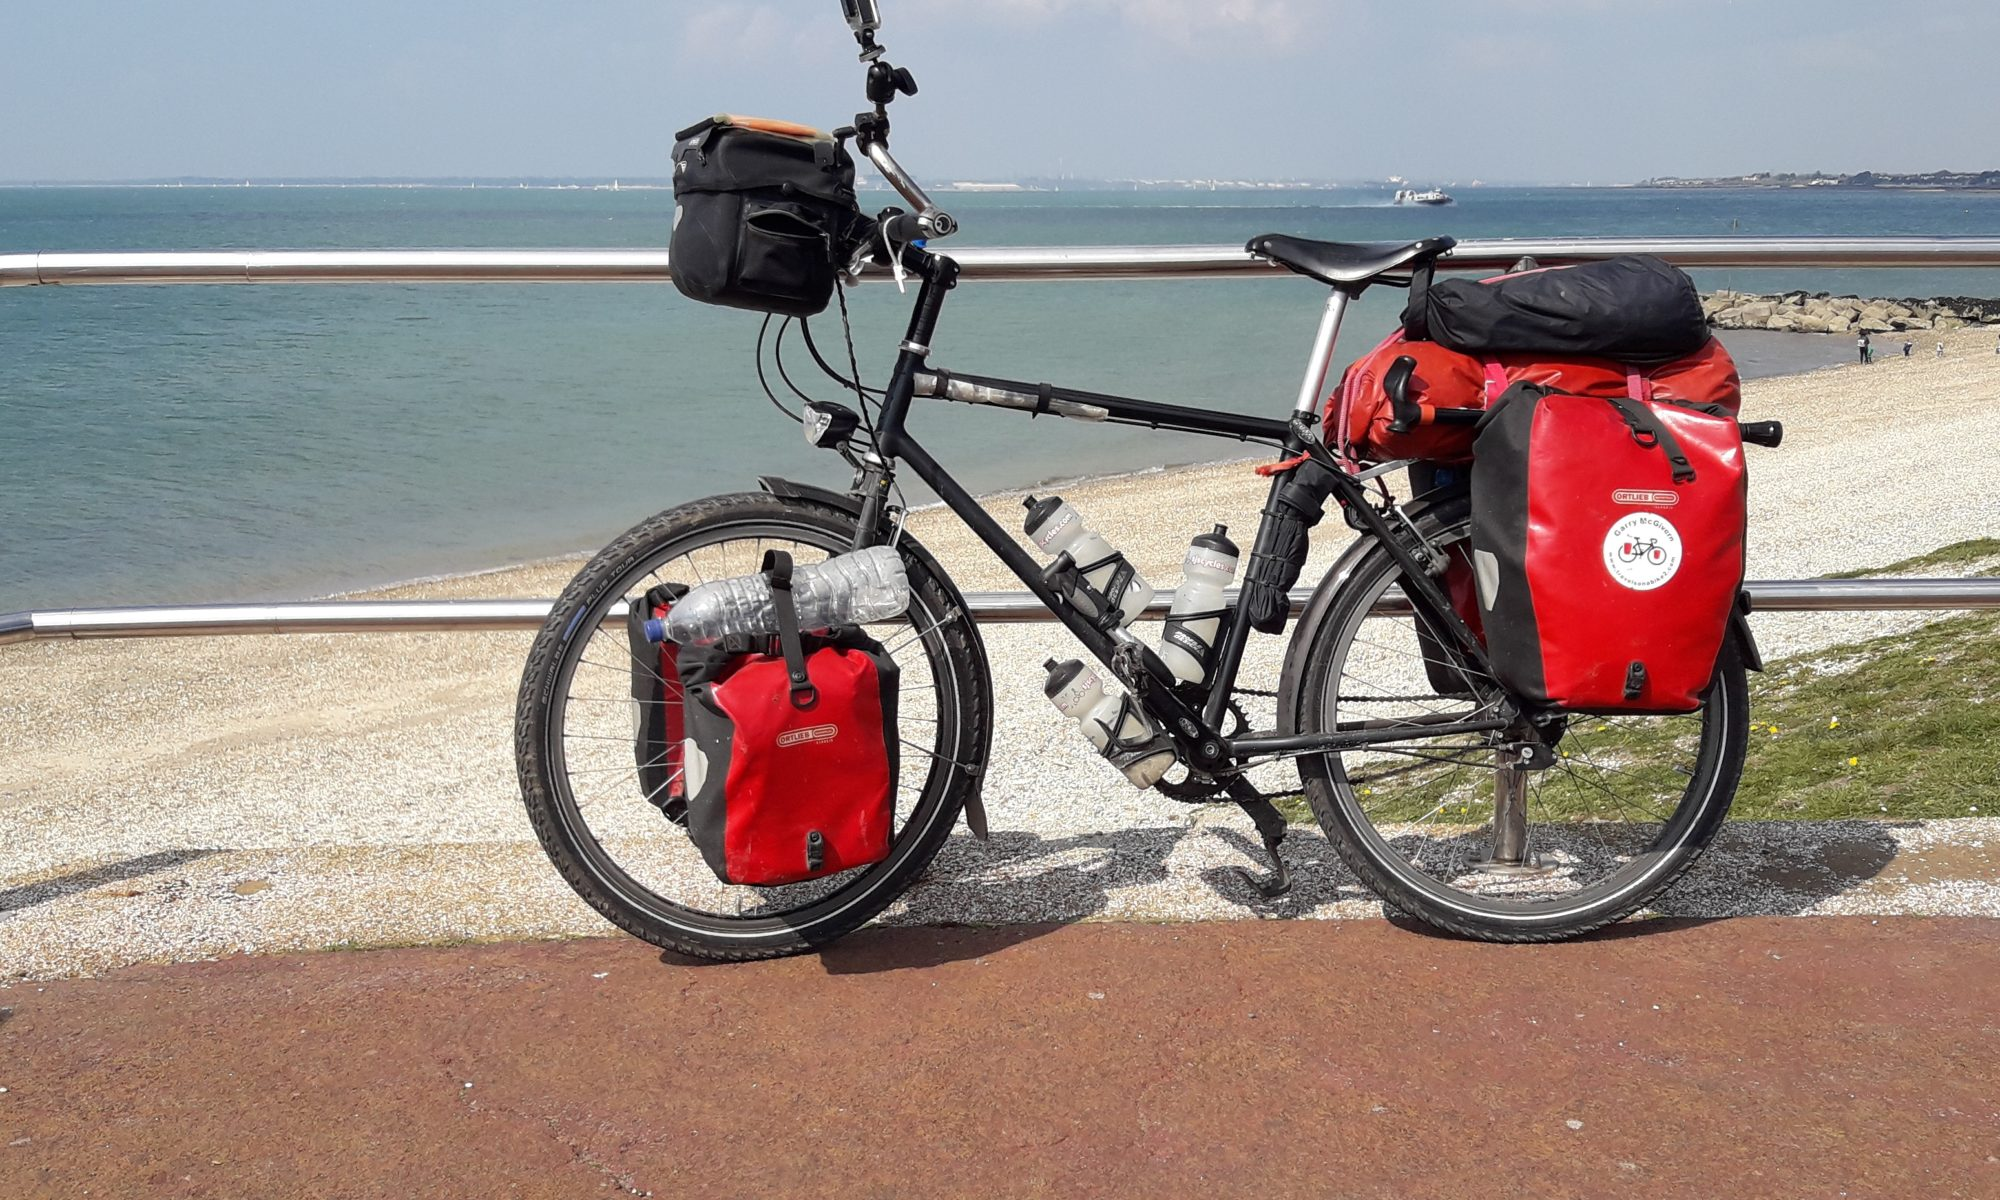 Bike on seafront